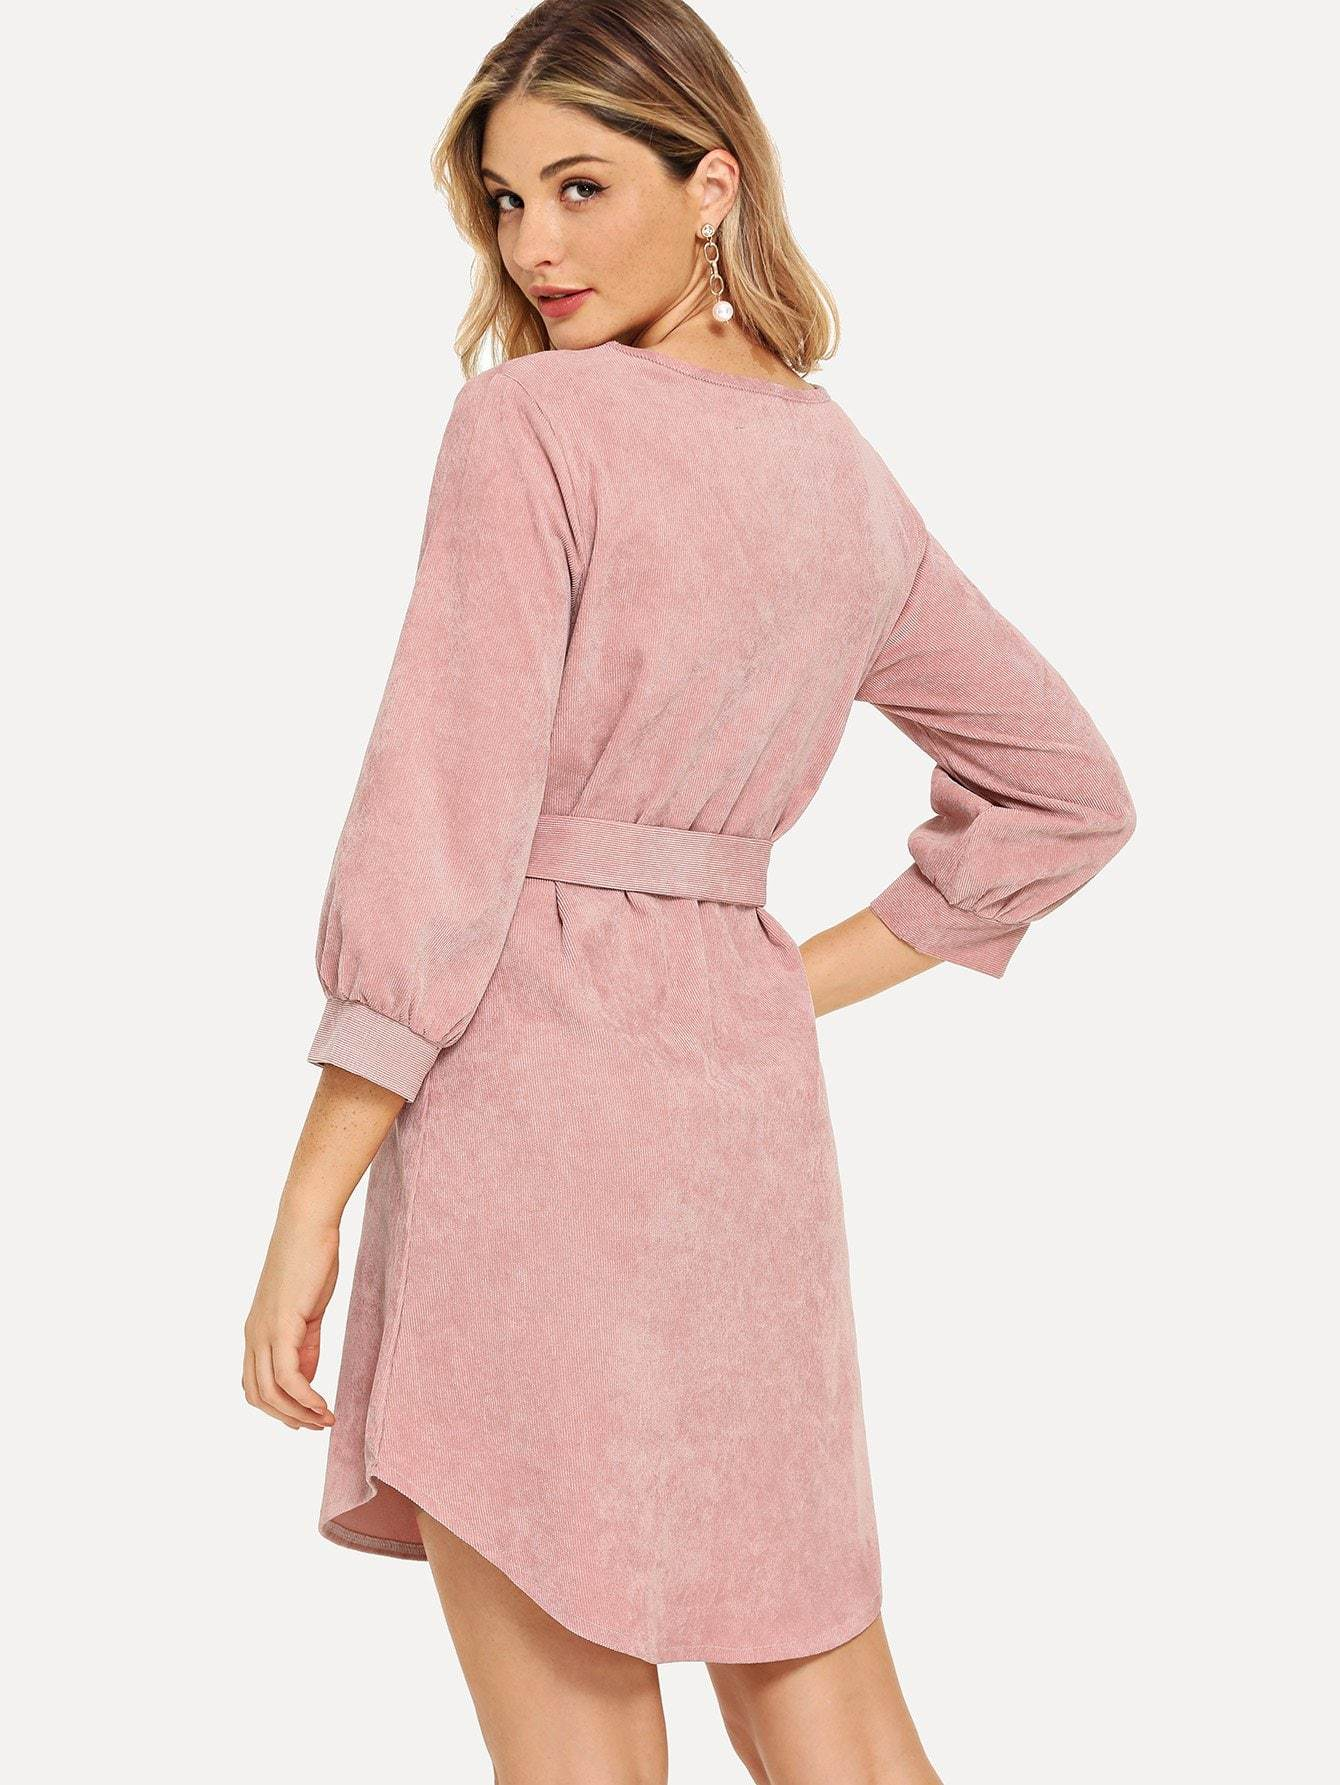 Waist Tied Corduroy Dress - LoveSylvester